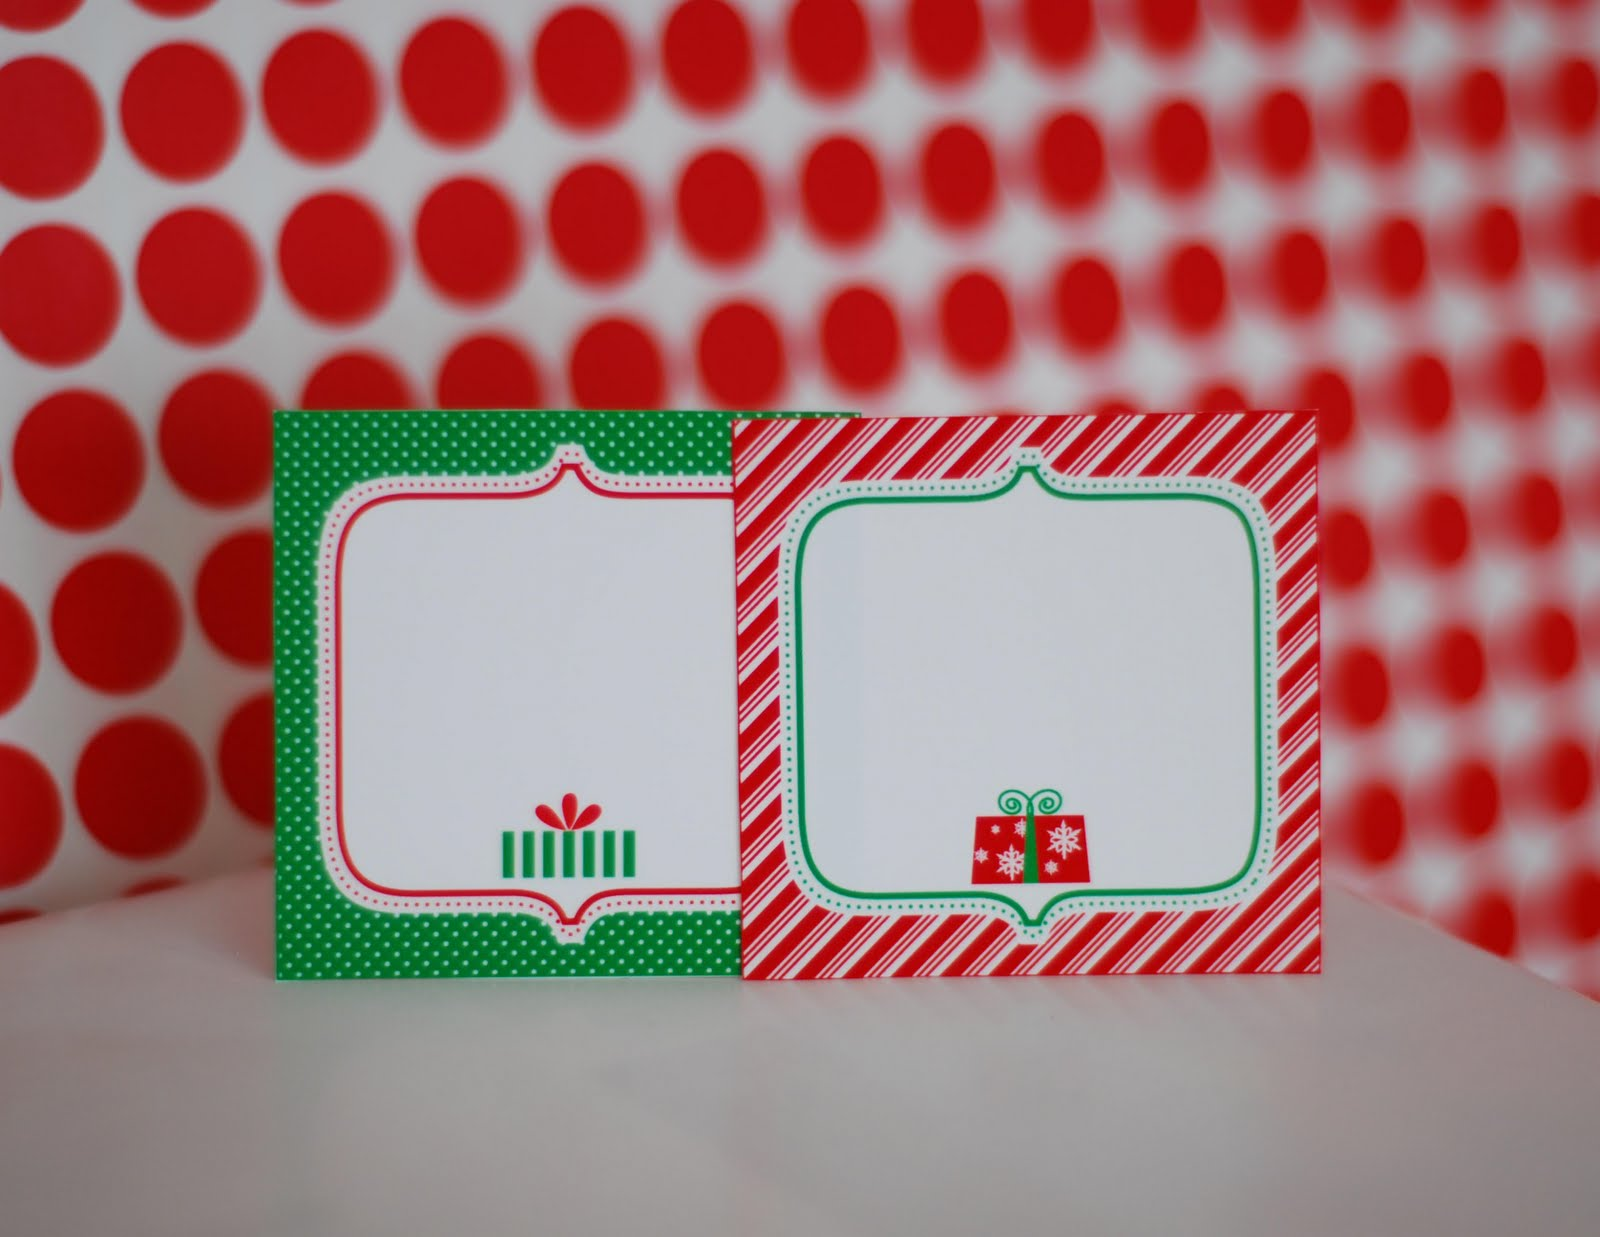 Free Printable: Letter To Santa, Wish List And Gift Tags